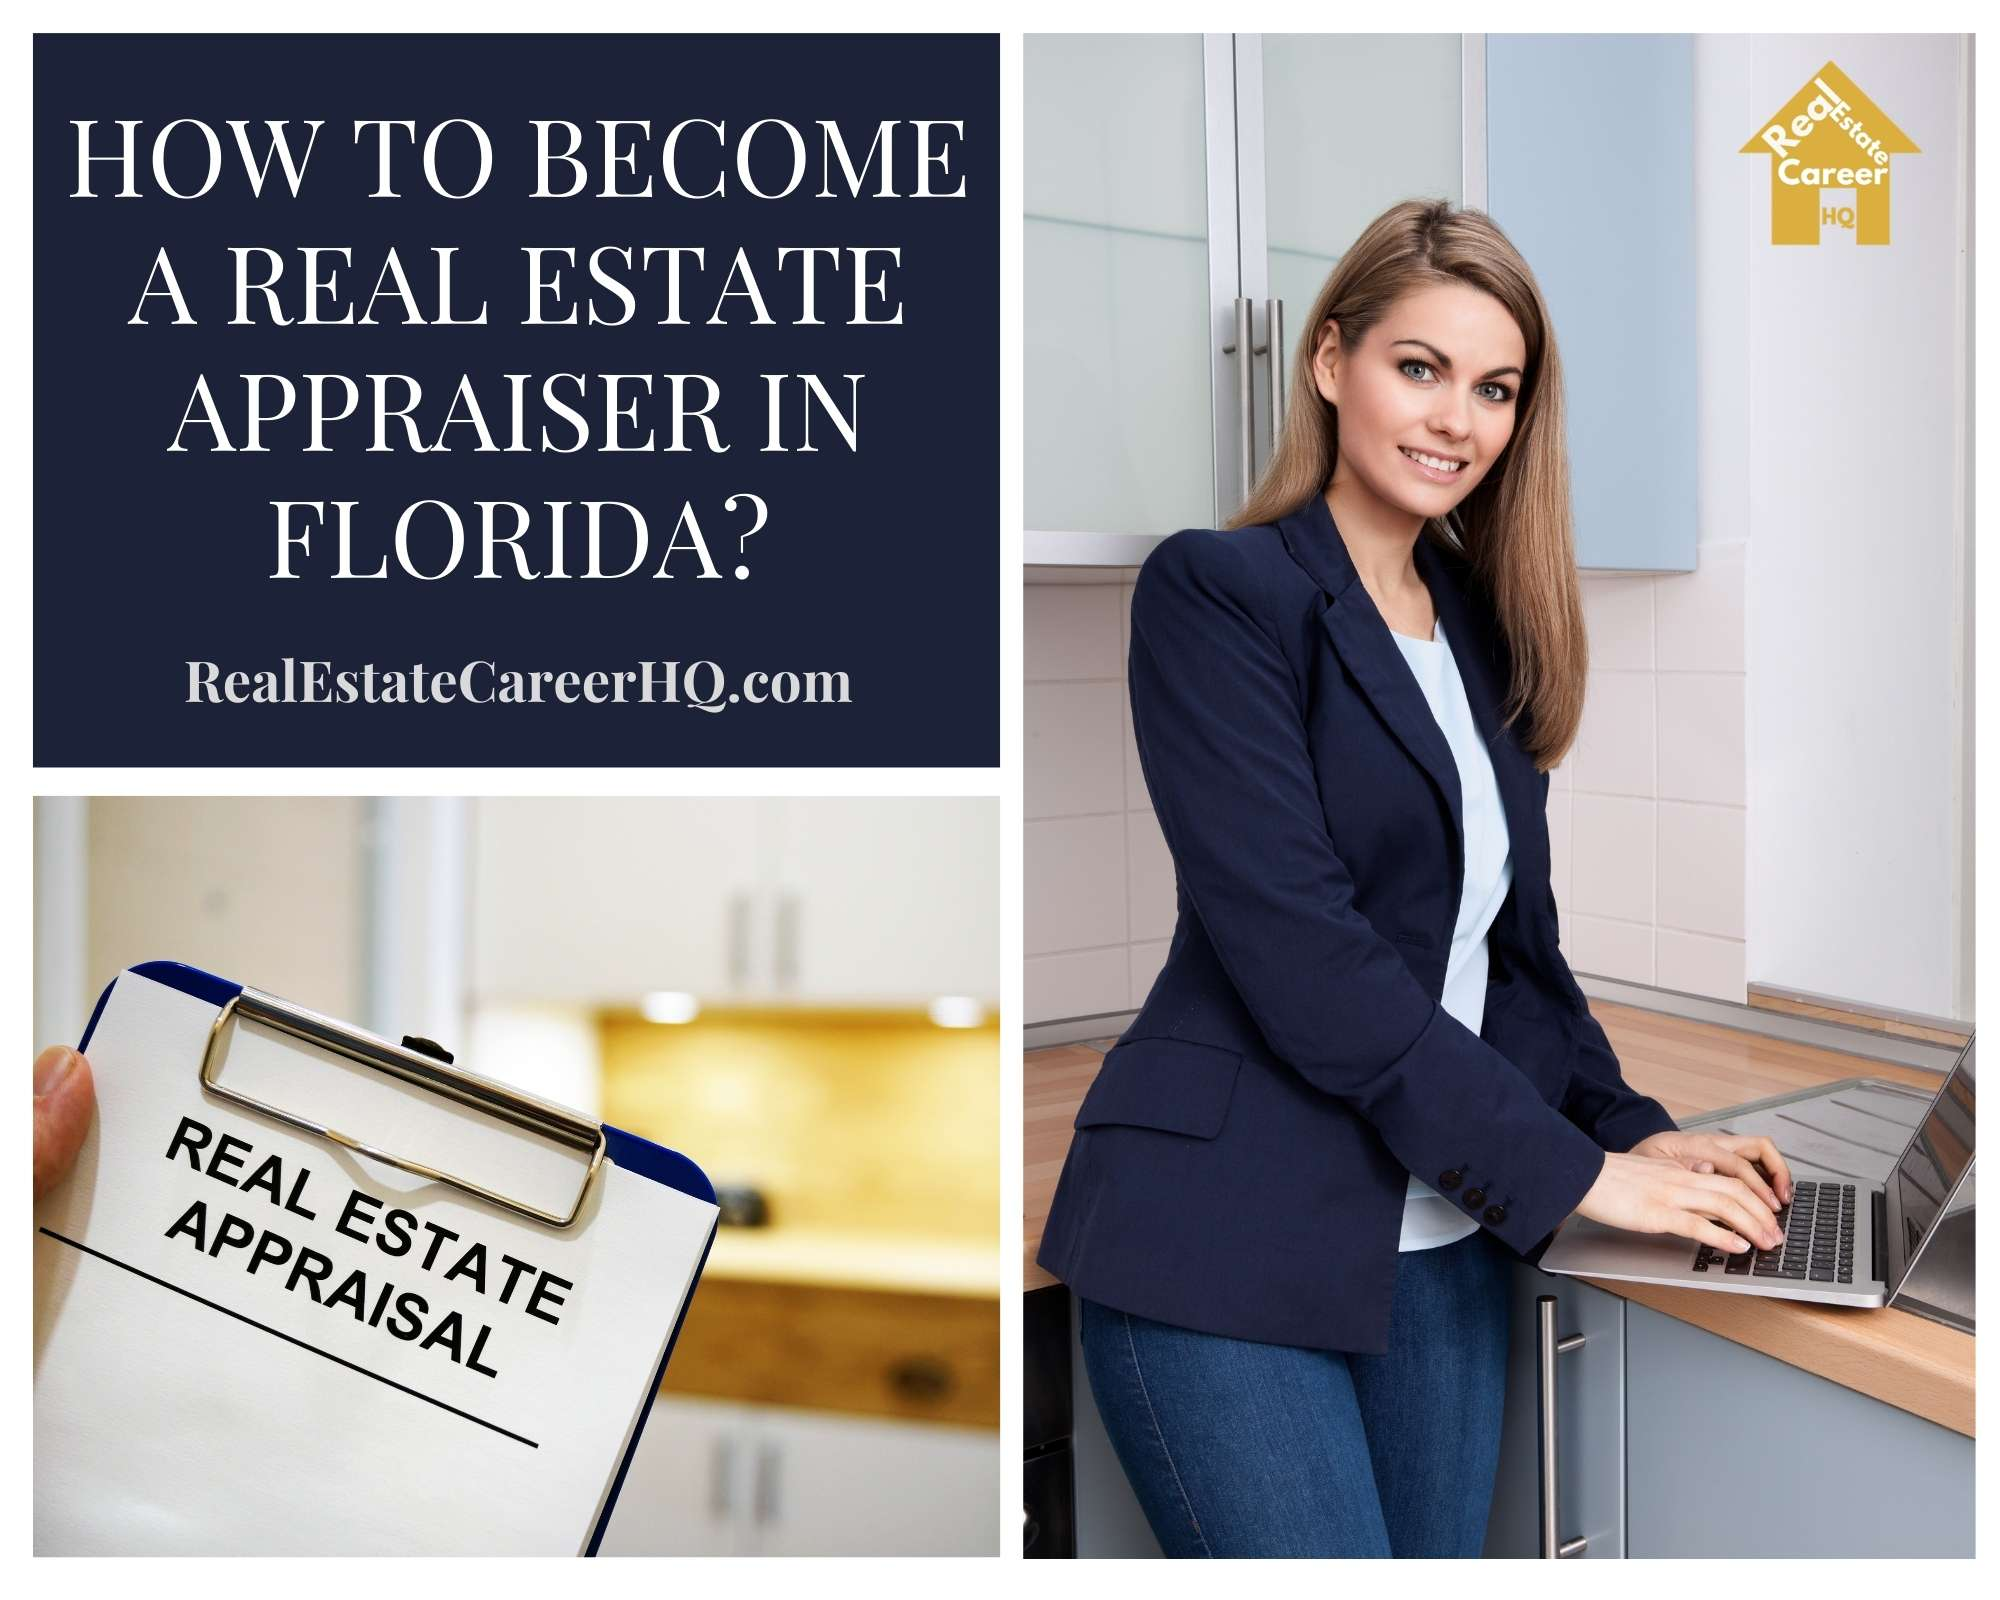 How to Become a Real Estate Appraiser in Florida?